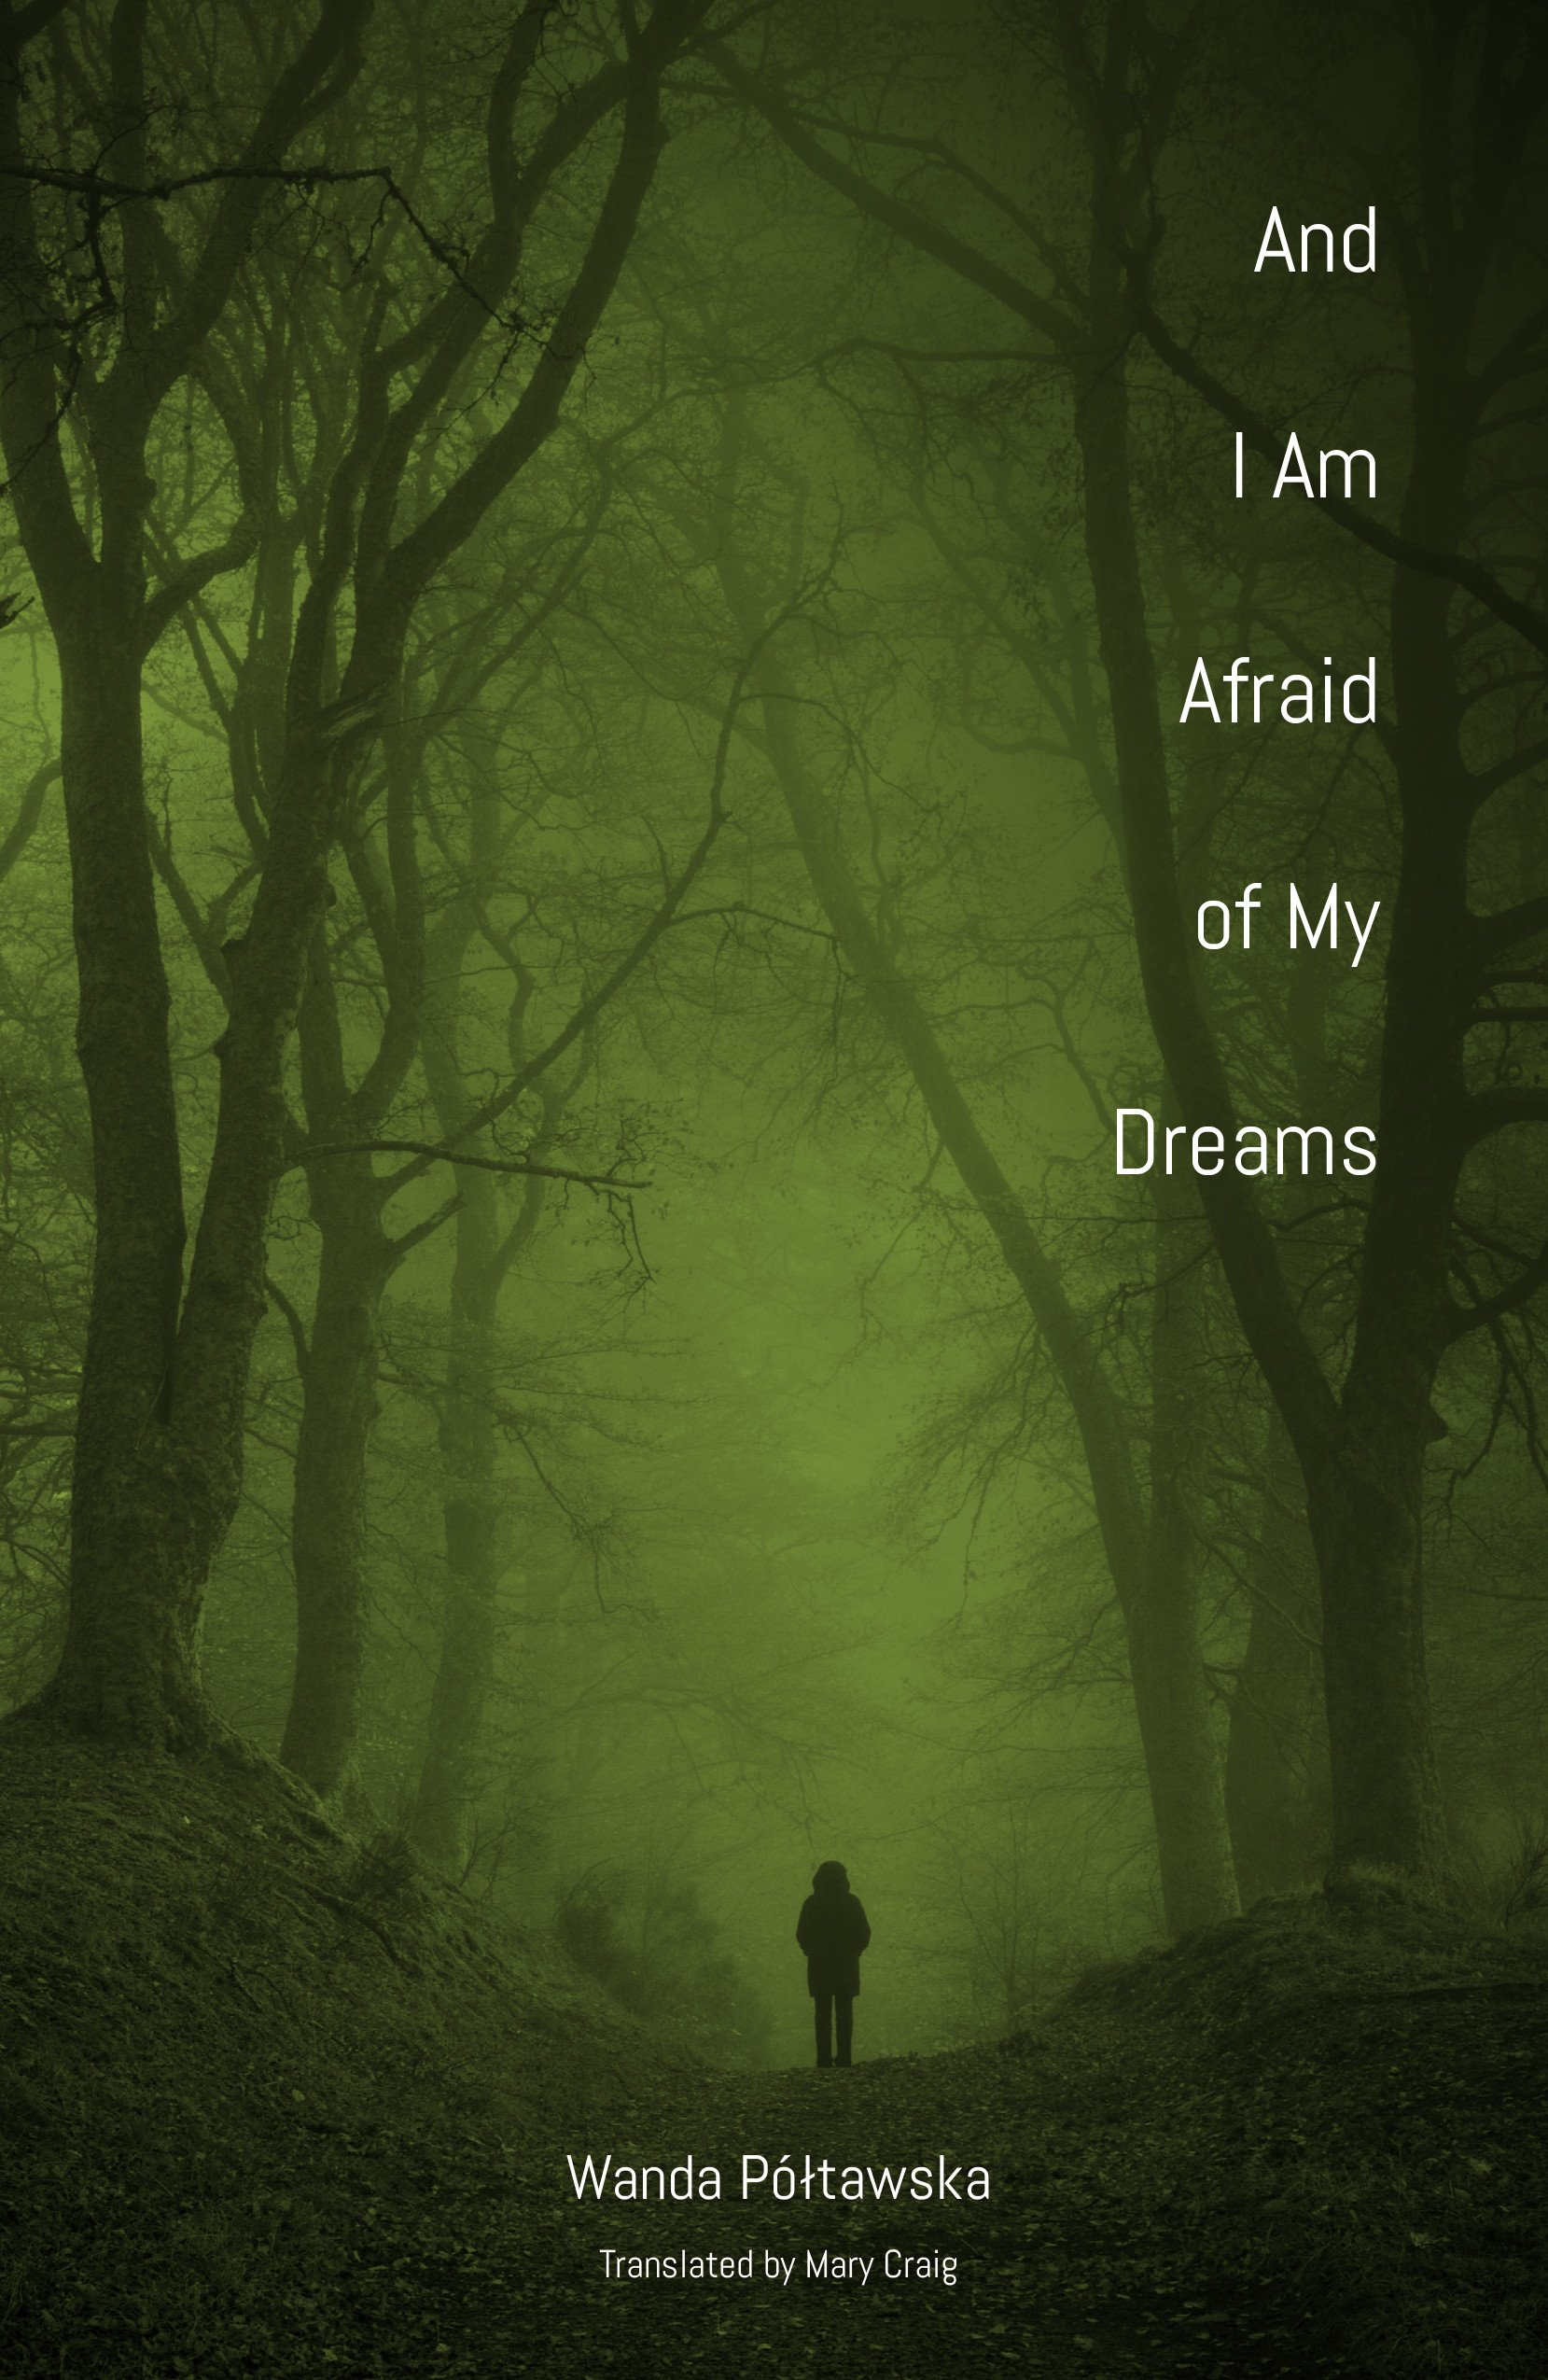 And I Am Afraid of my Dreams: Wanda Poltawska, Mary Craig: 9780781813037: Amazon.com: Books